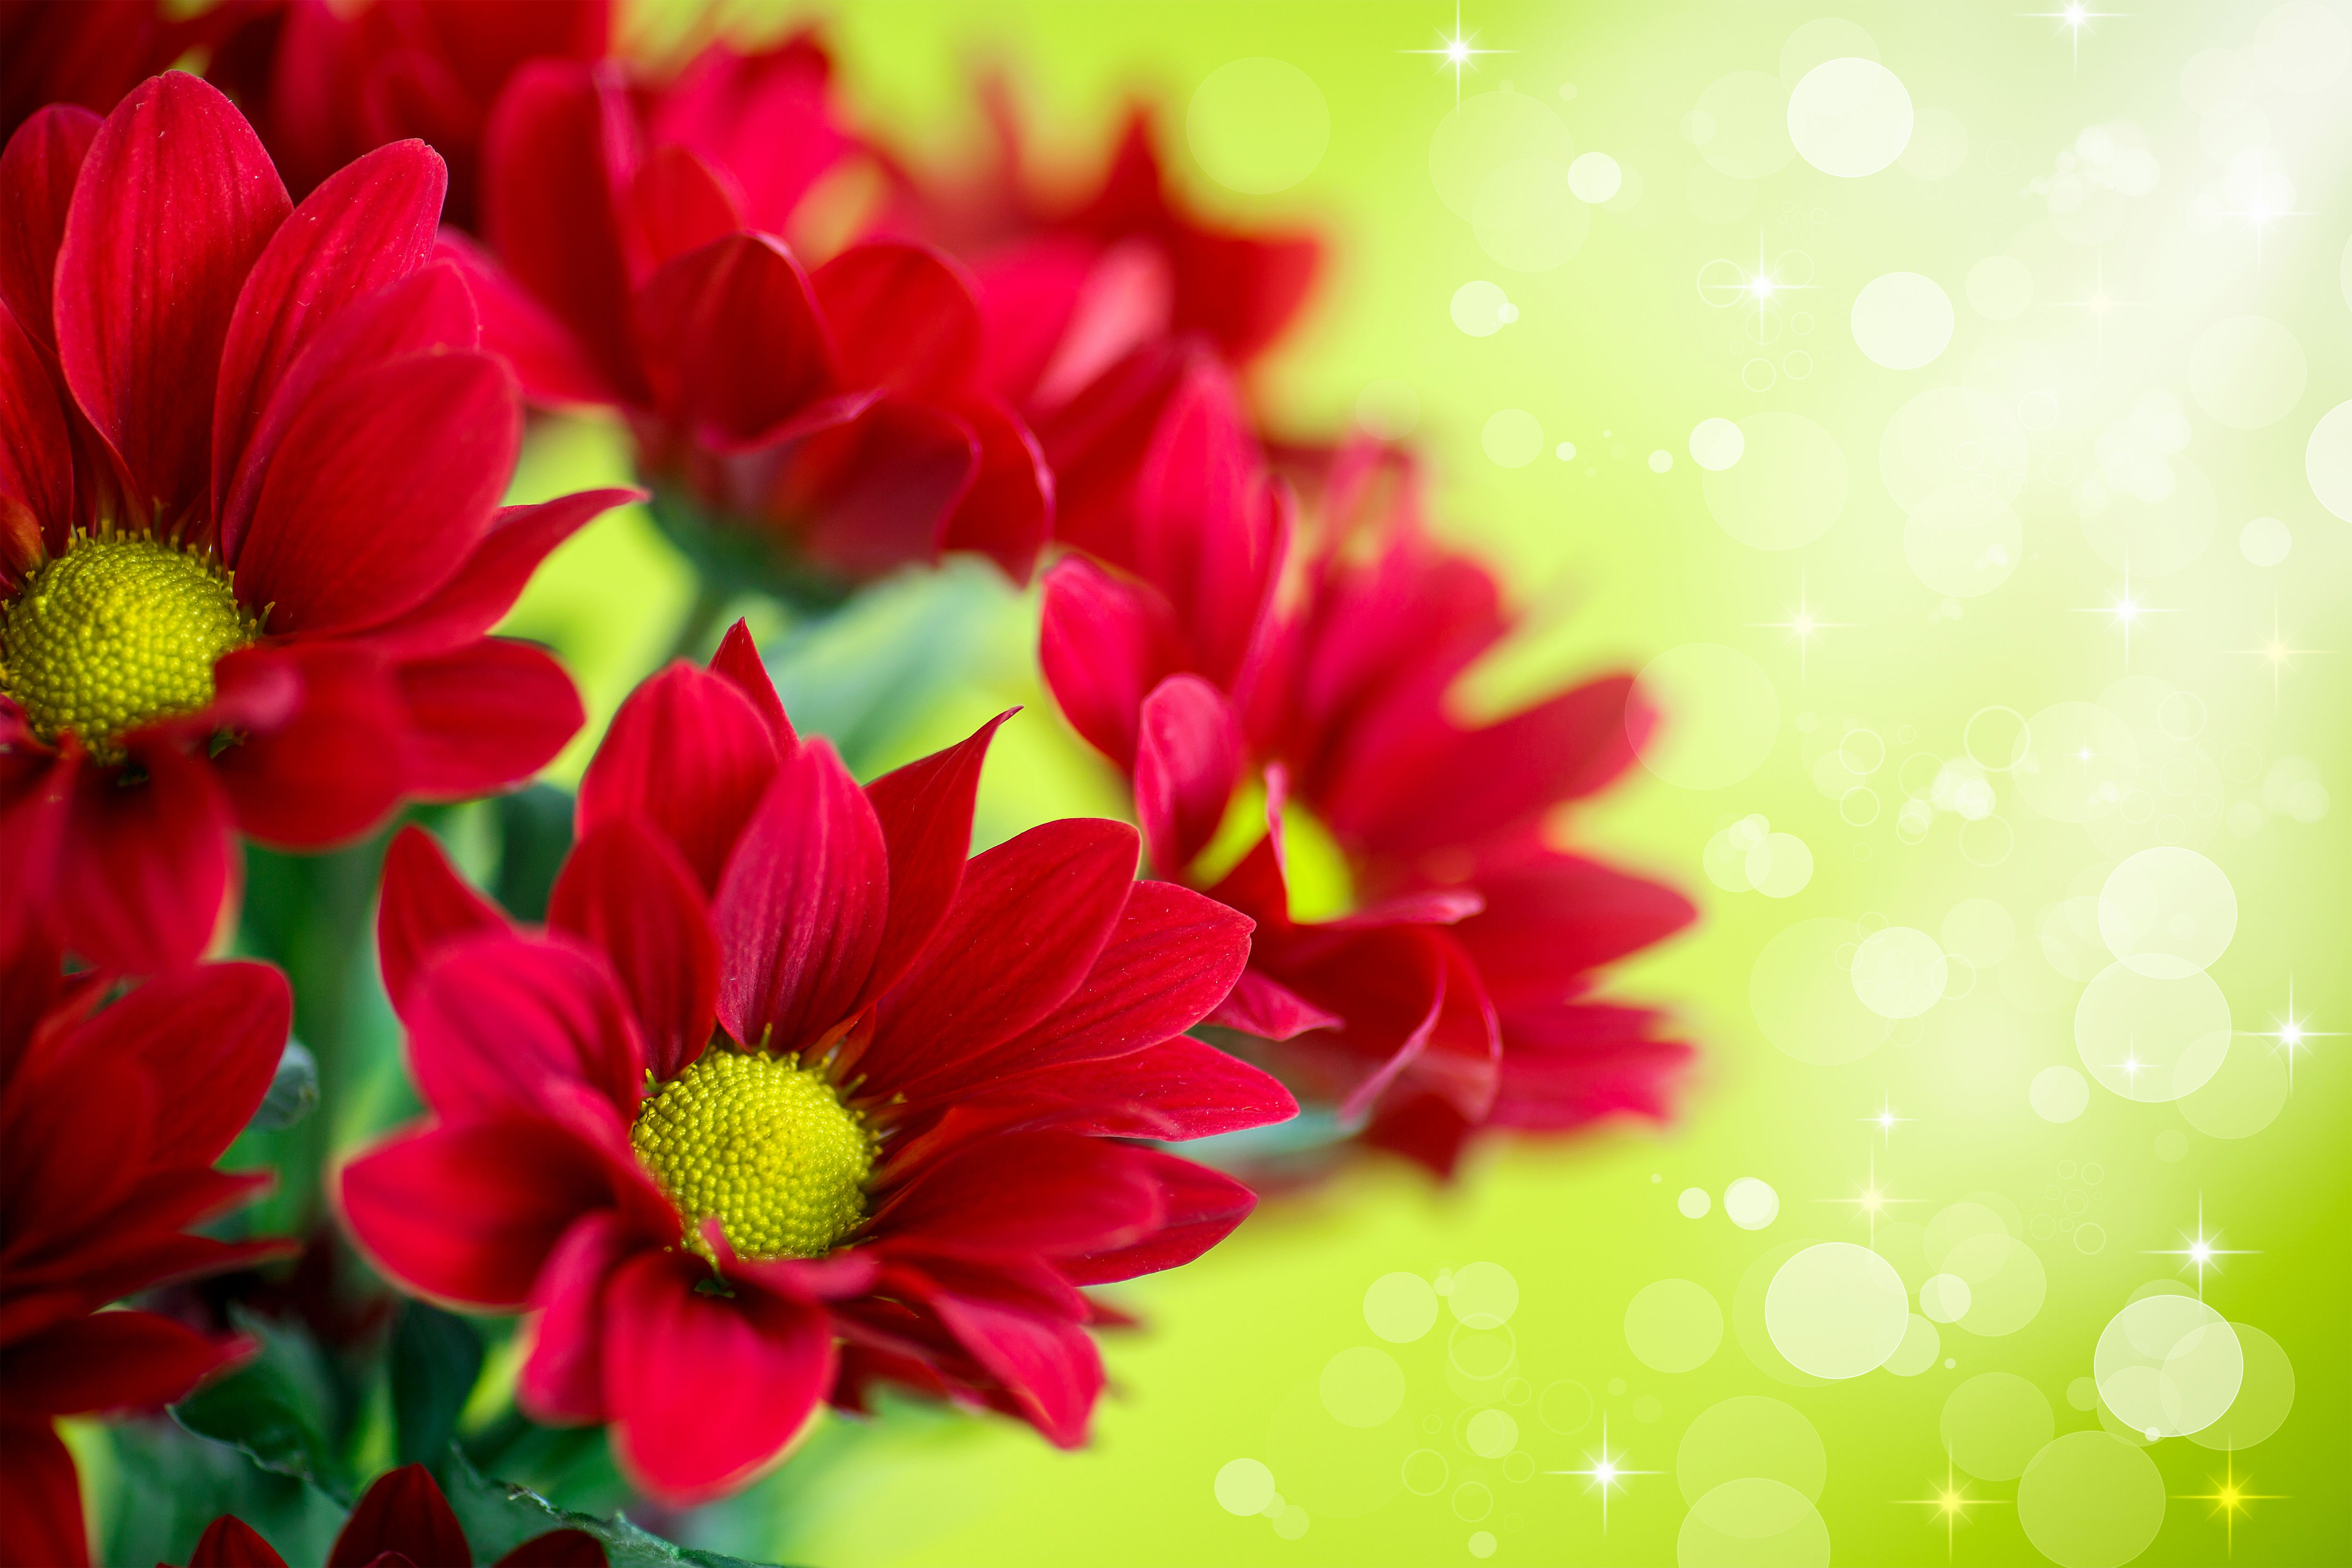 Dream Red Floral Background Free Vector Download Free Flower Backgrounds Floral Background Red Flowers